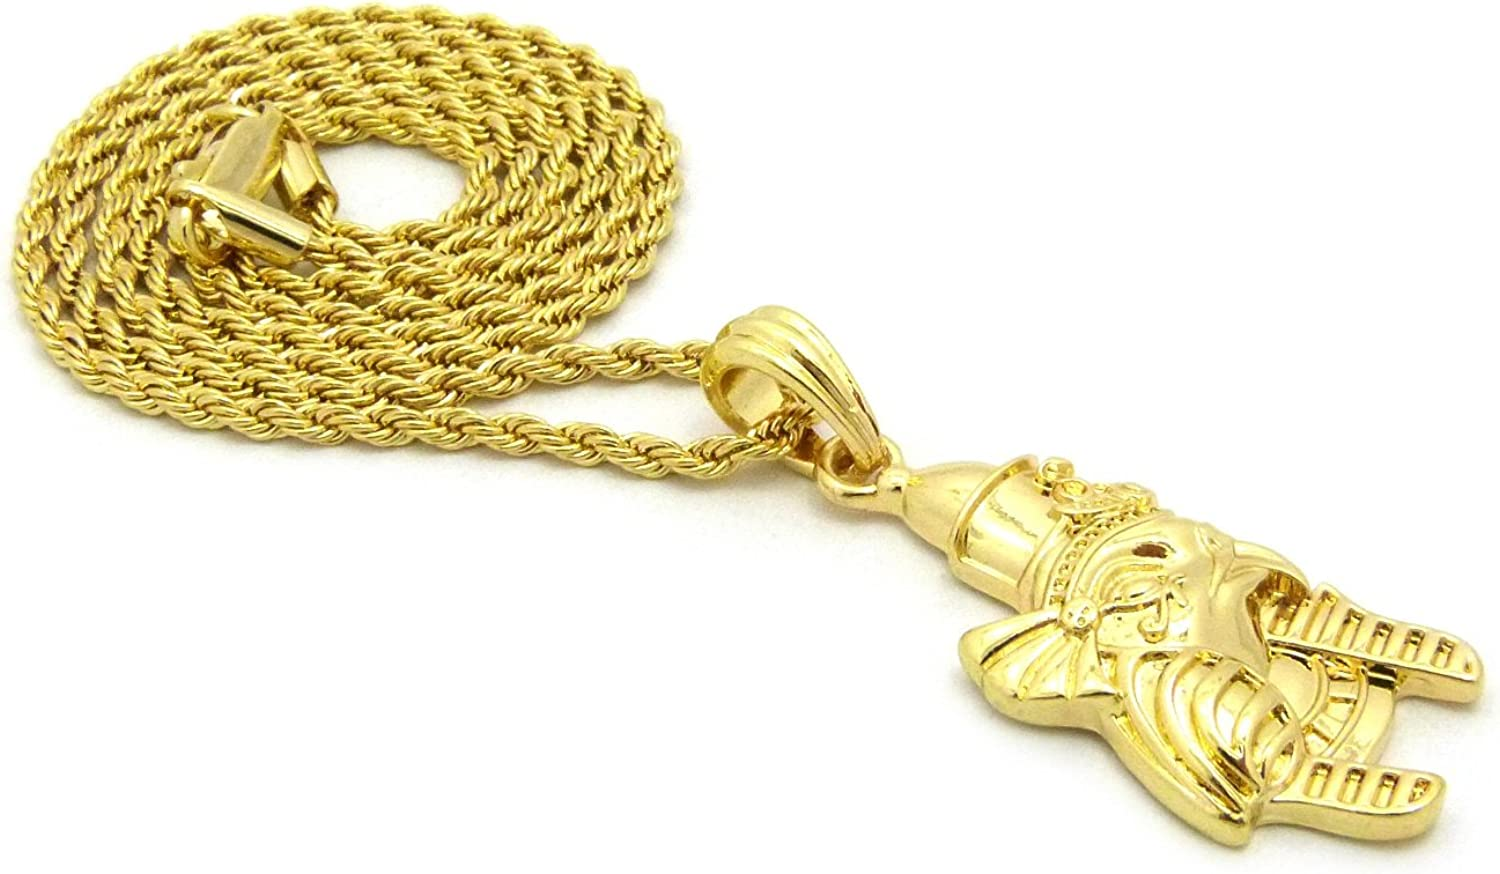 Micro Egyptian Wearing Pschent Horus Pendant 24 Box Rope Chain Necklace Gold Tone